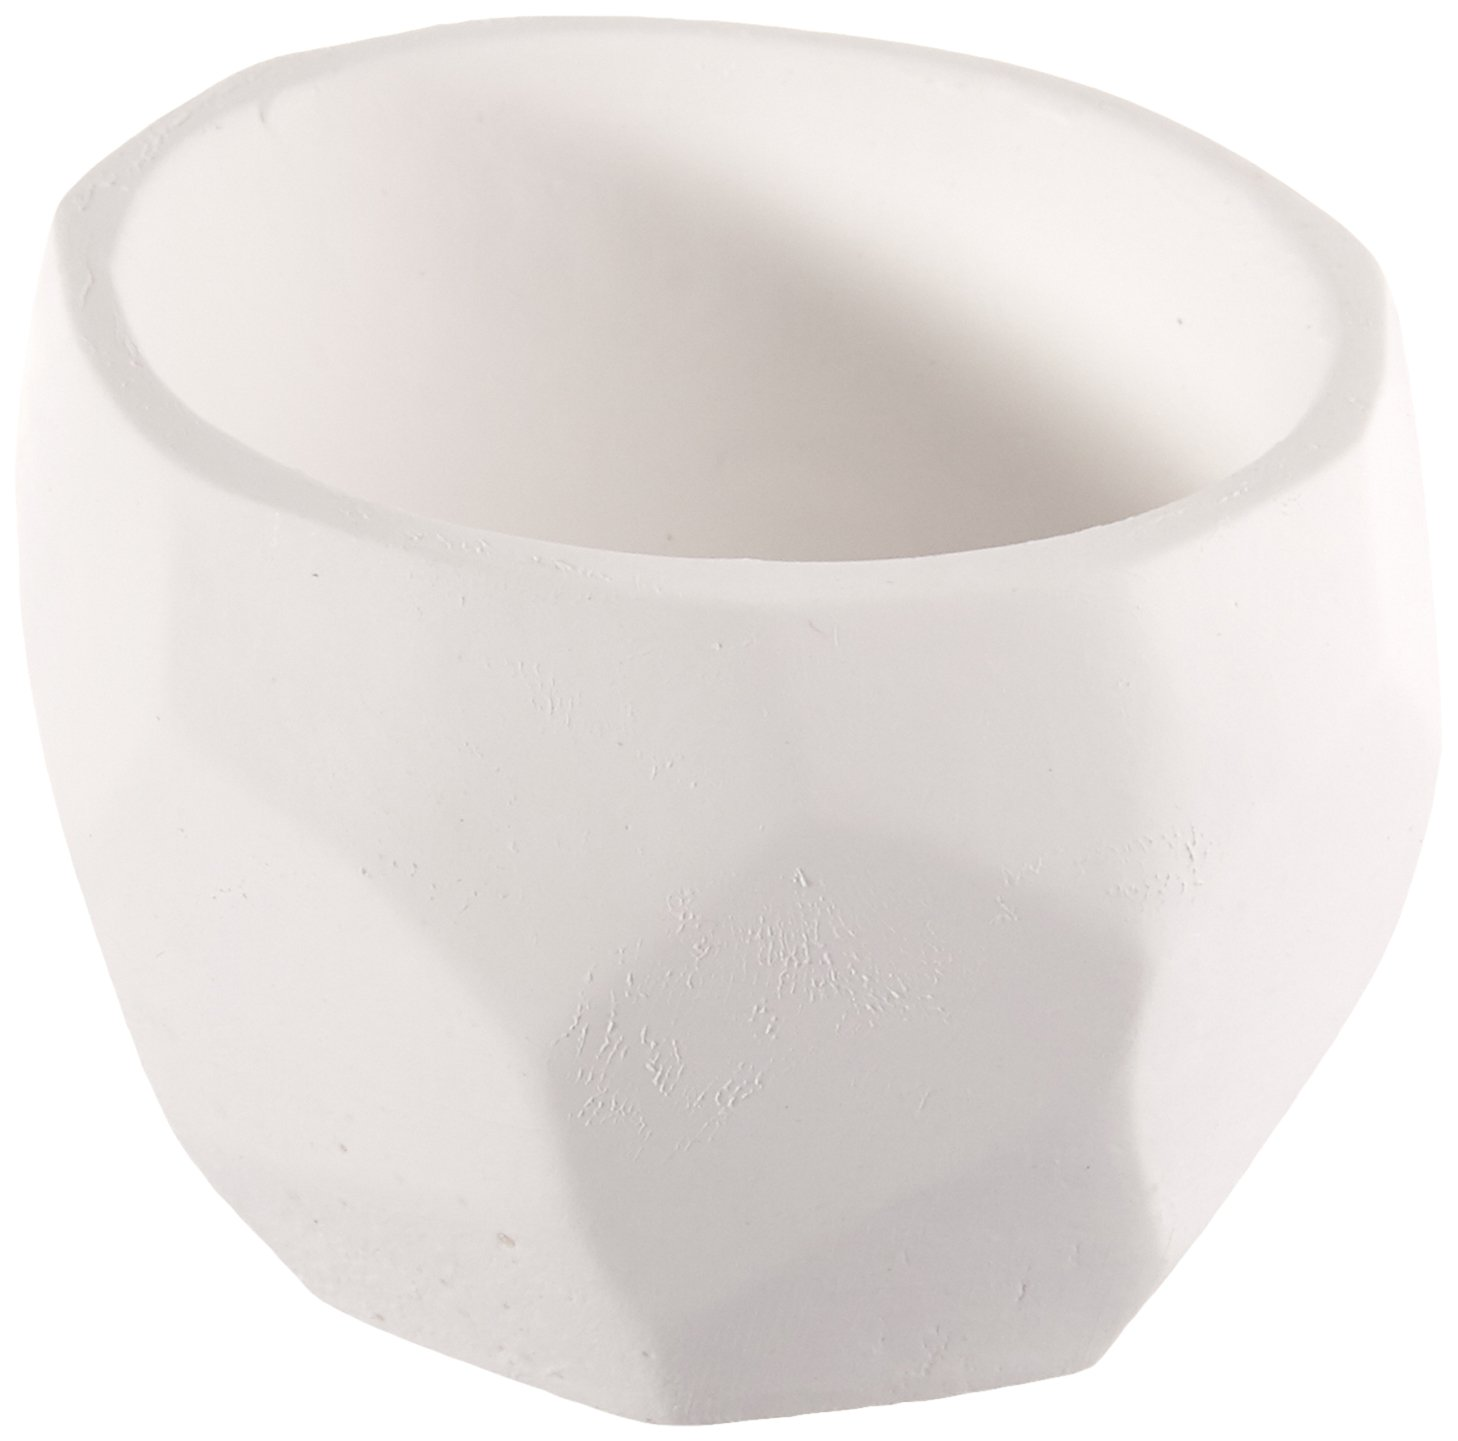 Kate AspenModern Garden Geometric Planter, White, Set of 4 Inc 25172NA